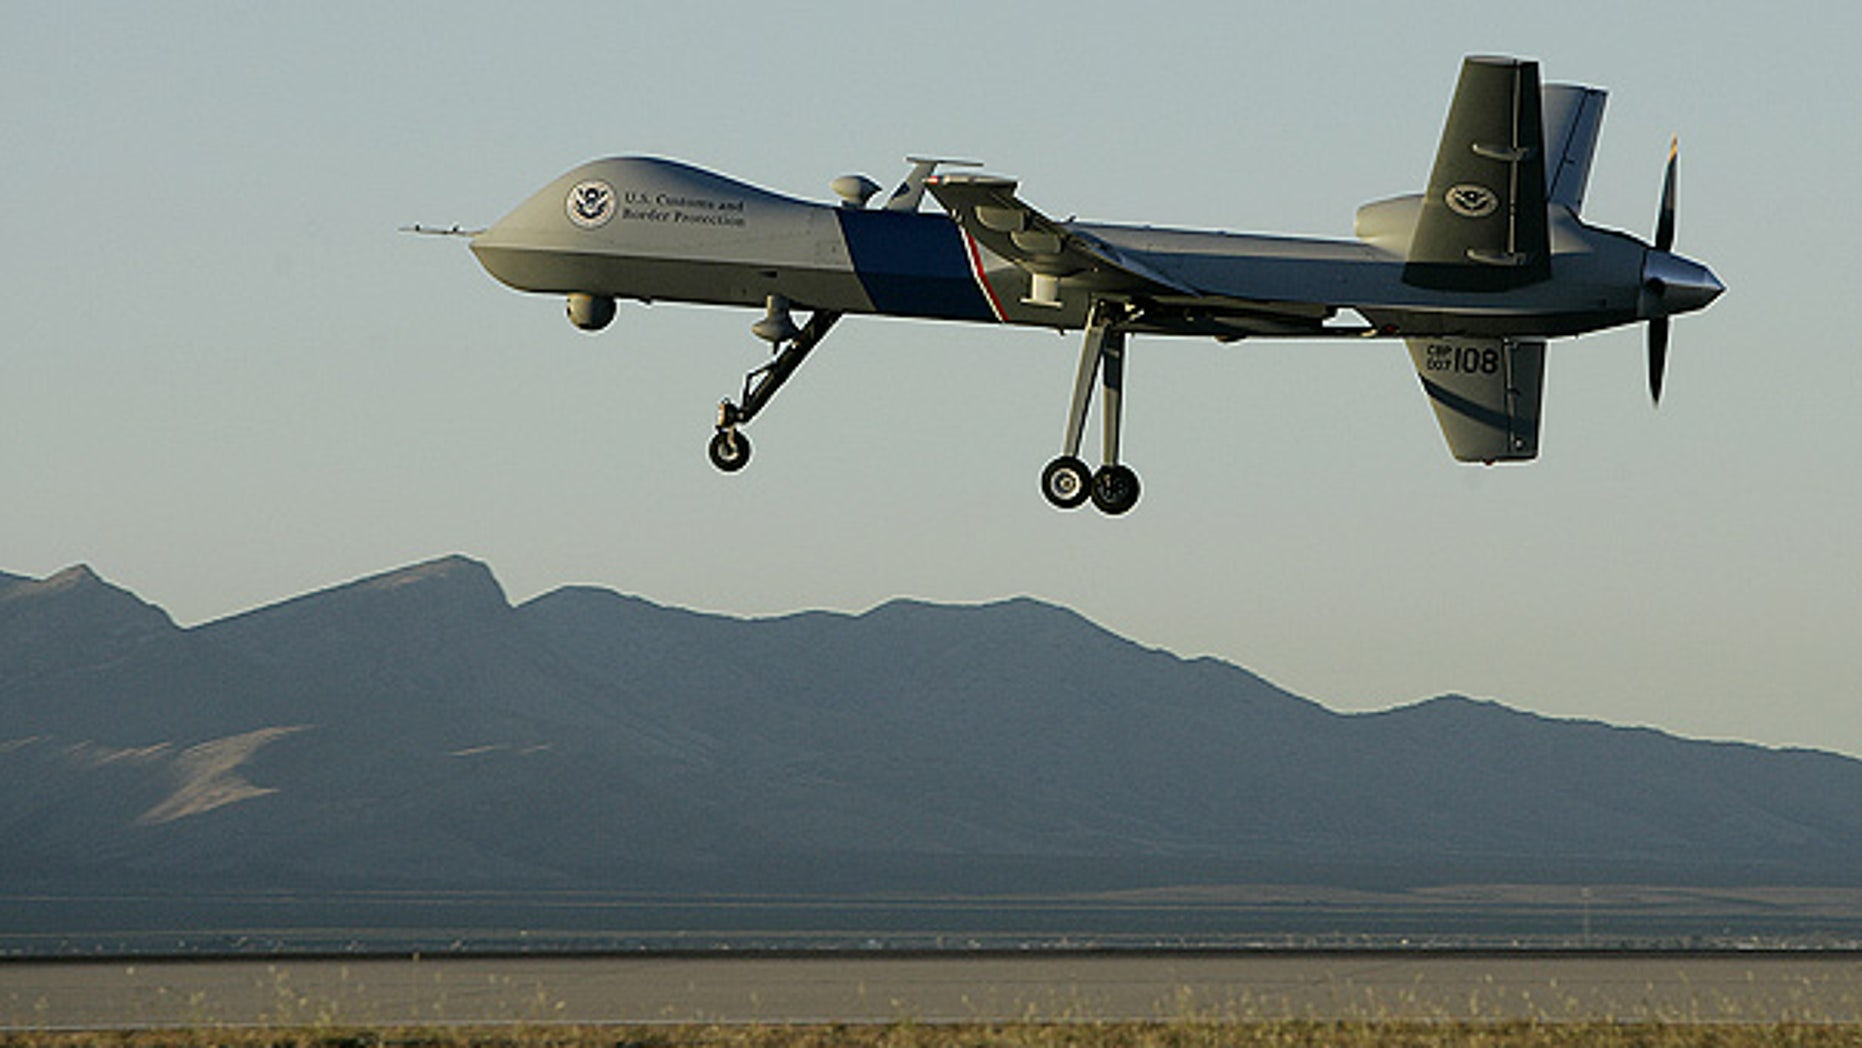 A Predator drone takes off on a U.S. Customs Border Patrol mission from Fort Huachuca, Ariz.